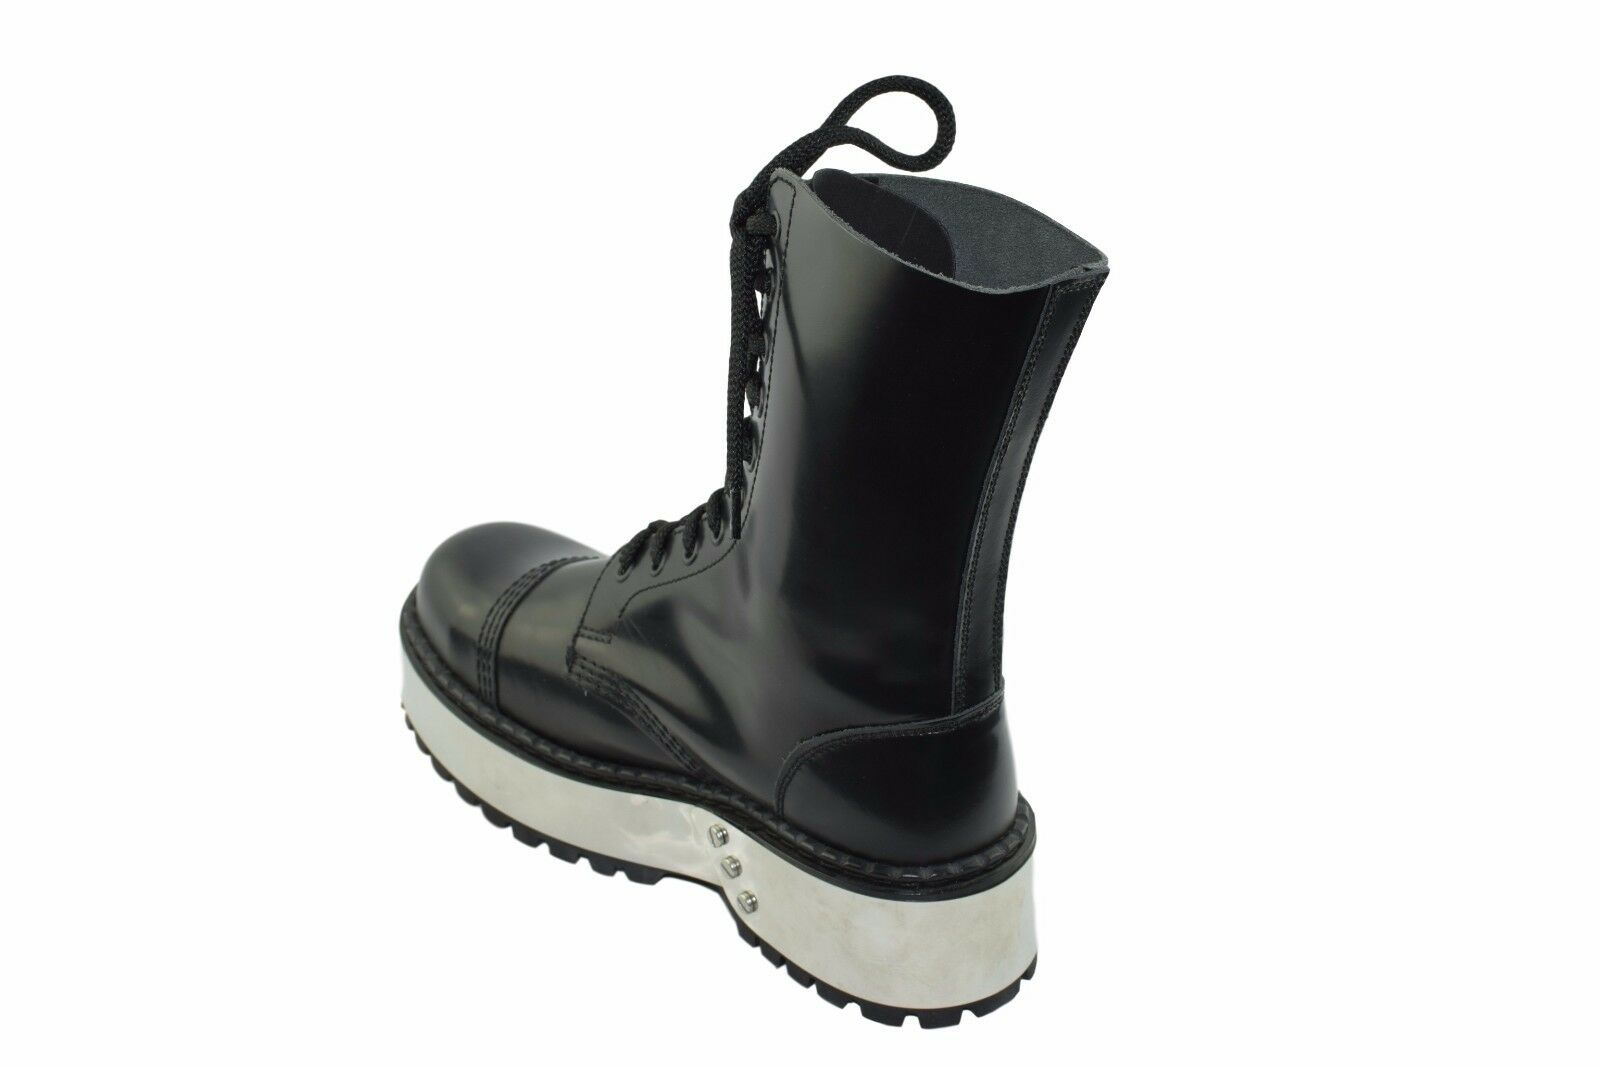 Steel Ground Metal Combat Boots Black Leather 10 Eyelets Triple Metal Ground Sole Safety Cap e2804e